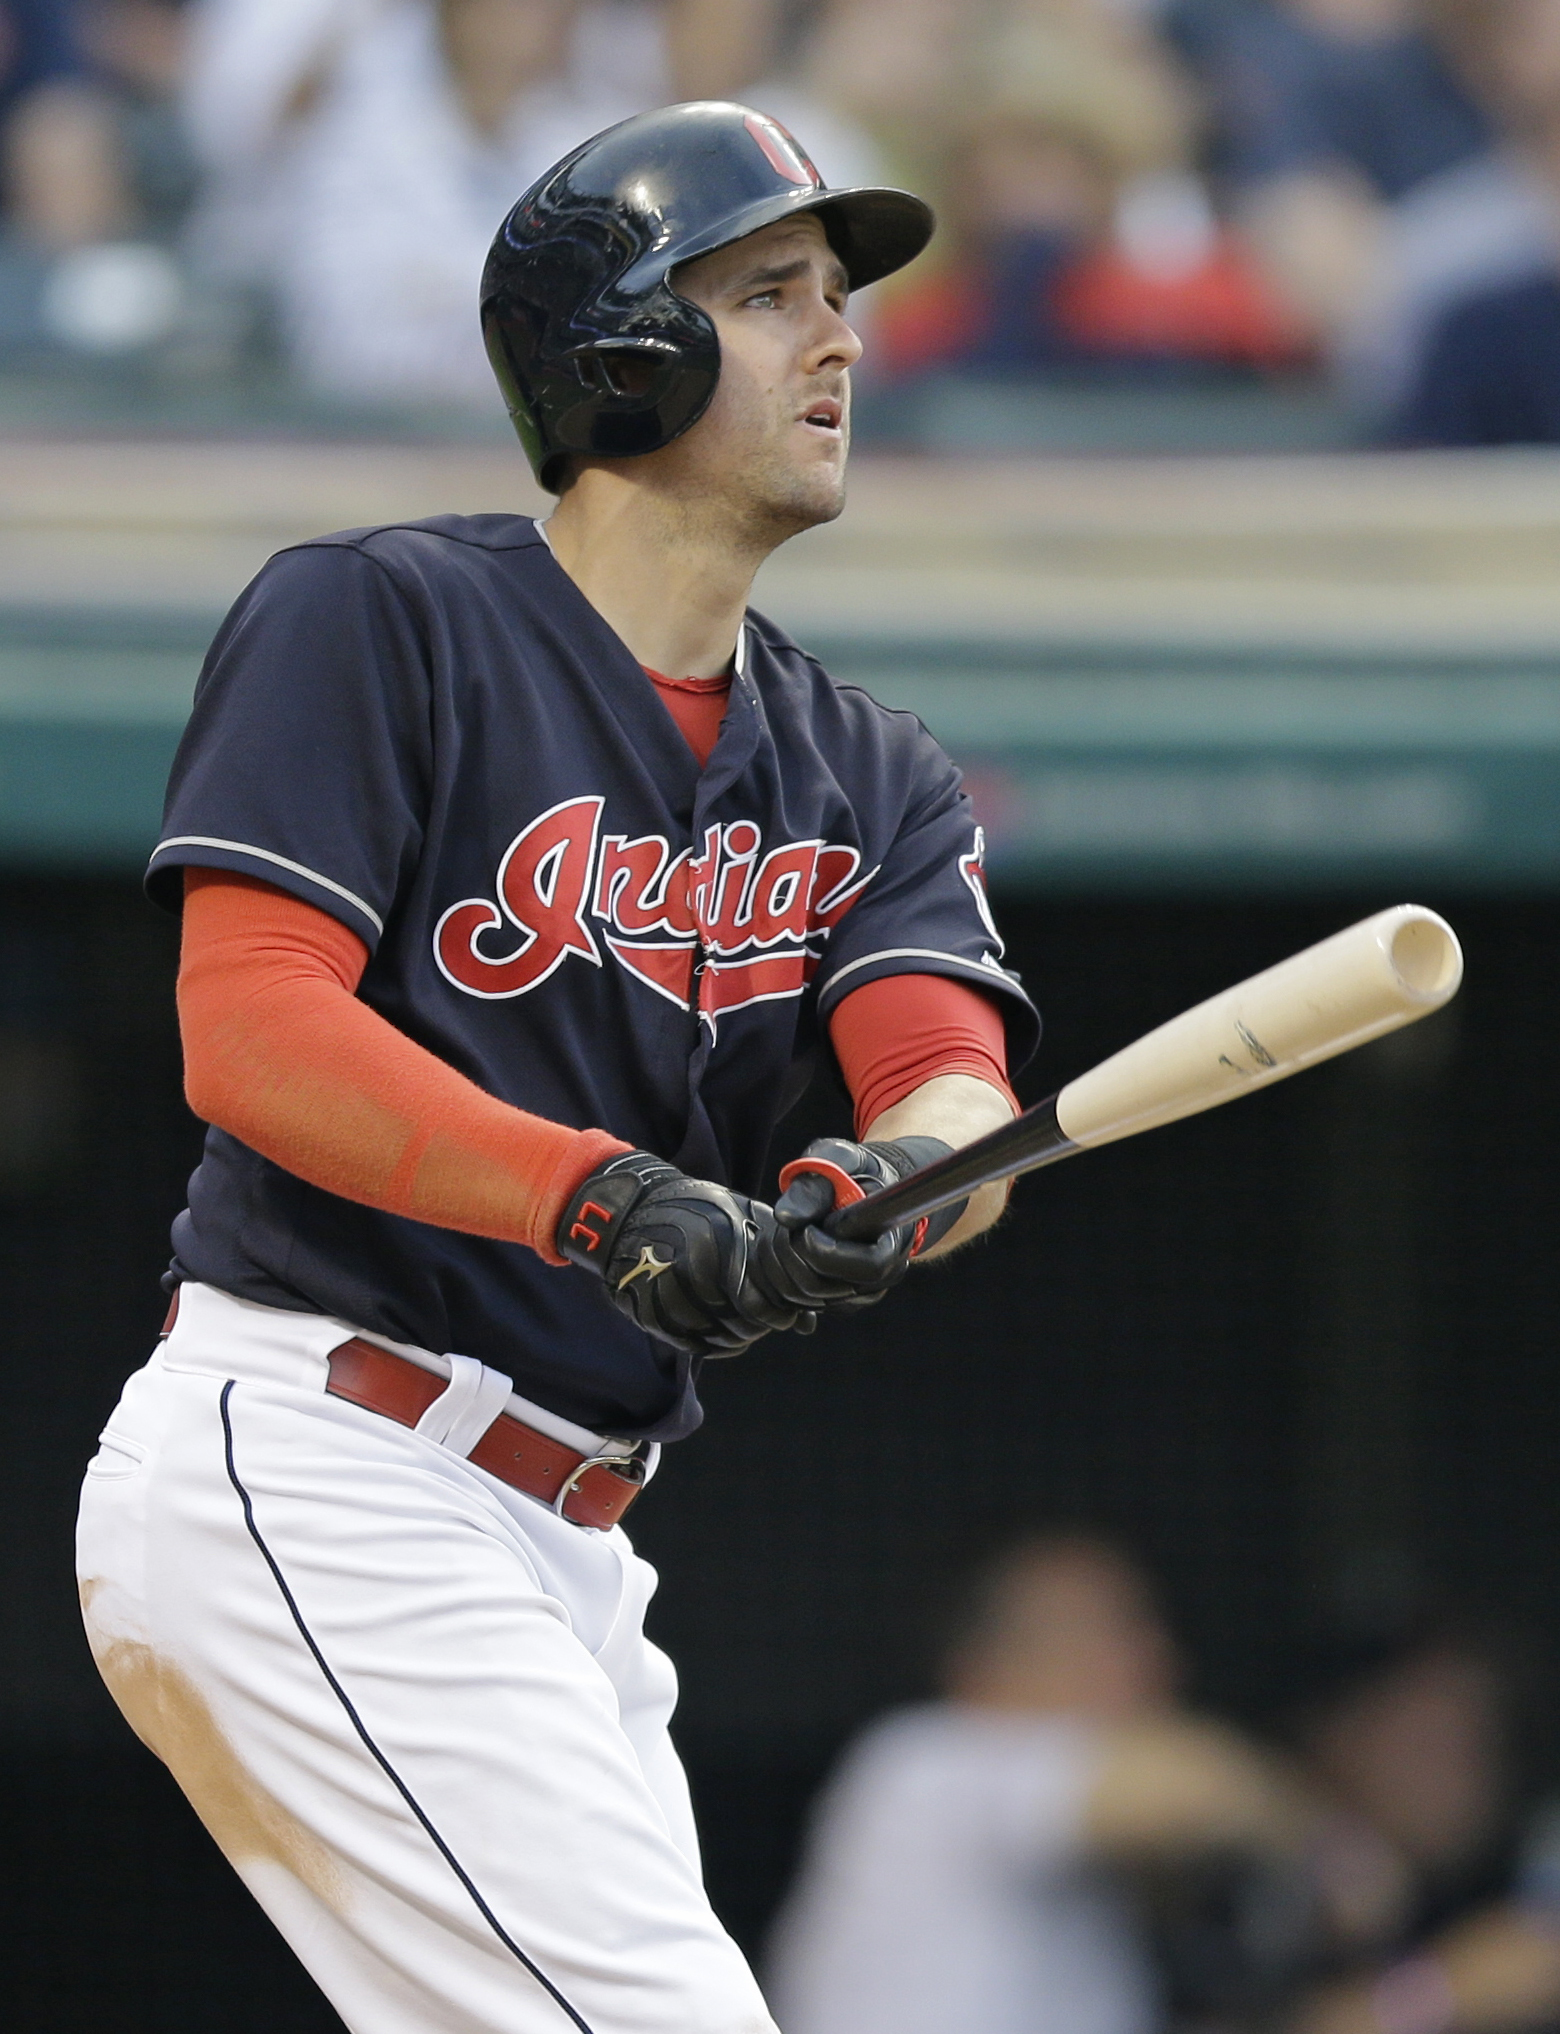 Cleveland Indians' Lonnie Chisenhall watches his two-run home run off Texas Rangers relief pitcher Tony Barnette during the seventh inning of a baseball game, Tuesday, May 31, 2016, in Cleveland. Jose Ramirez scored on the play. (AP Photo/Tony Dejak)